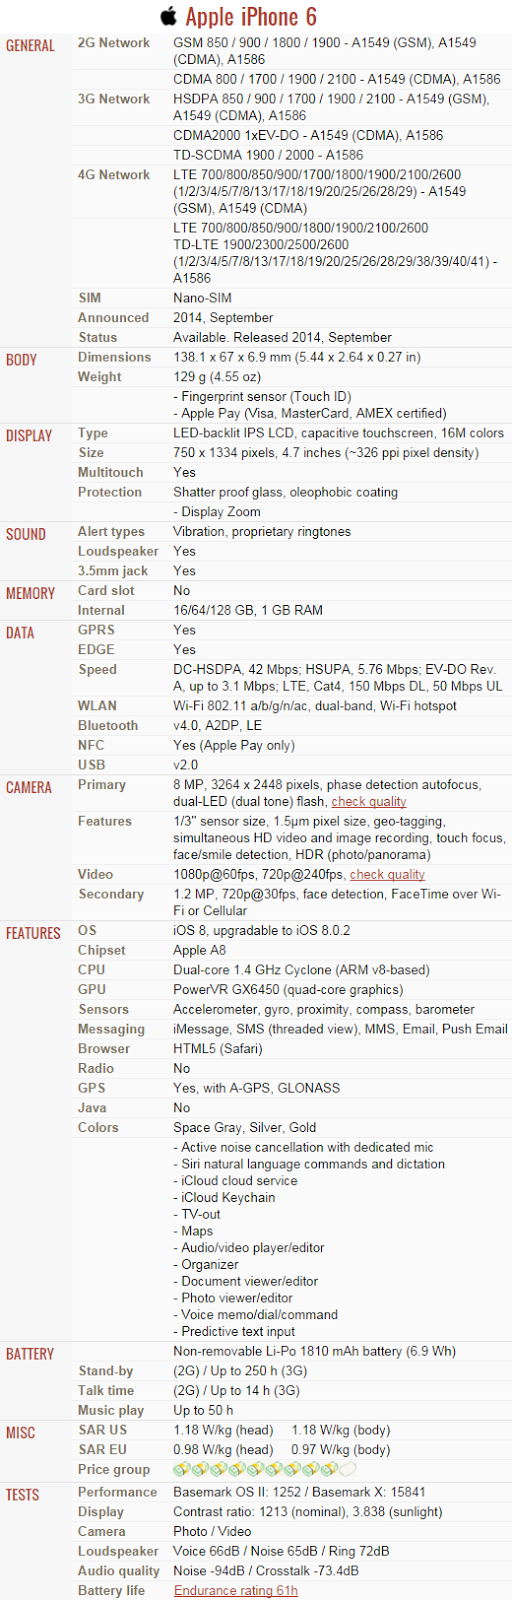 Apple iPhone 6 Smartphone Specs and Features